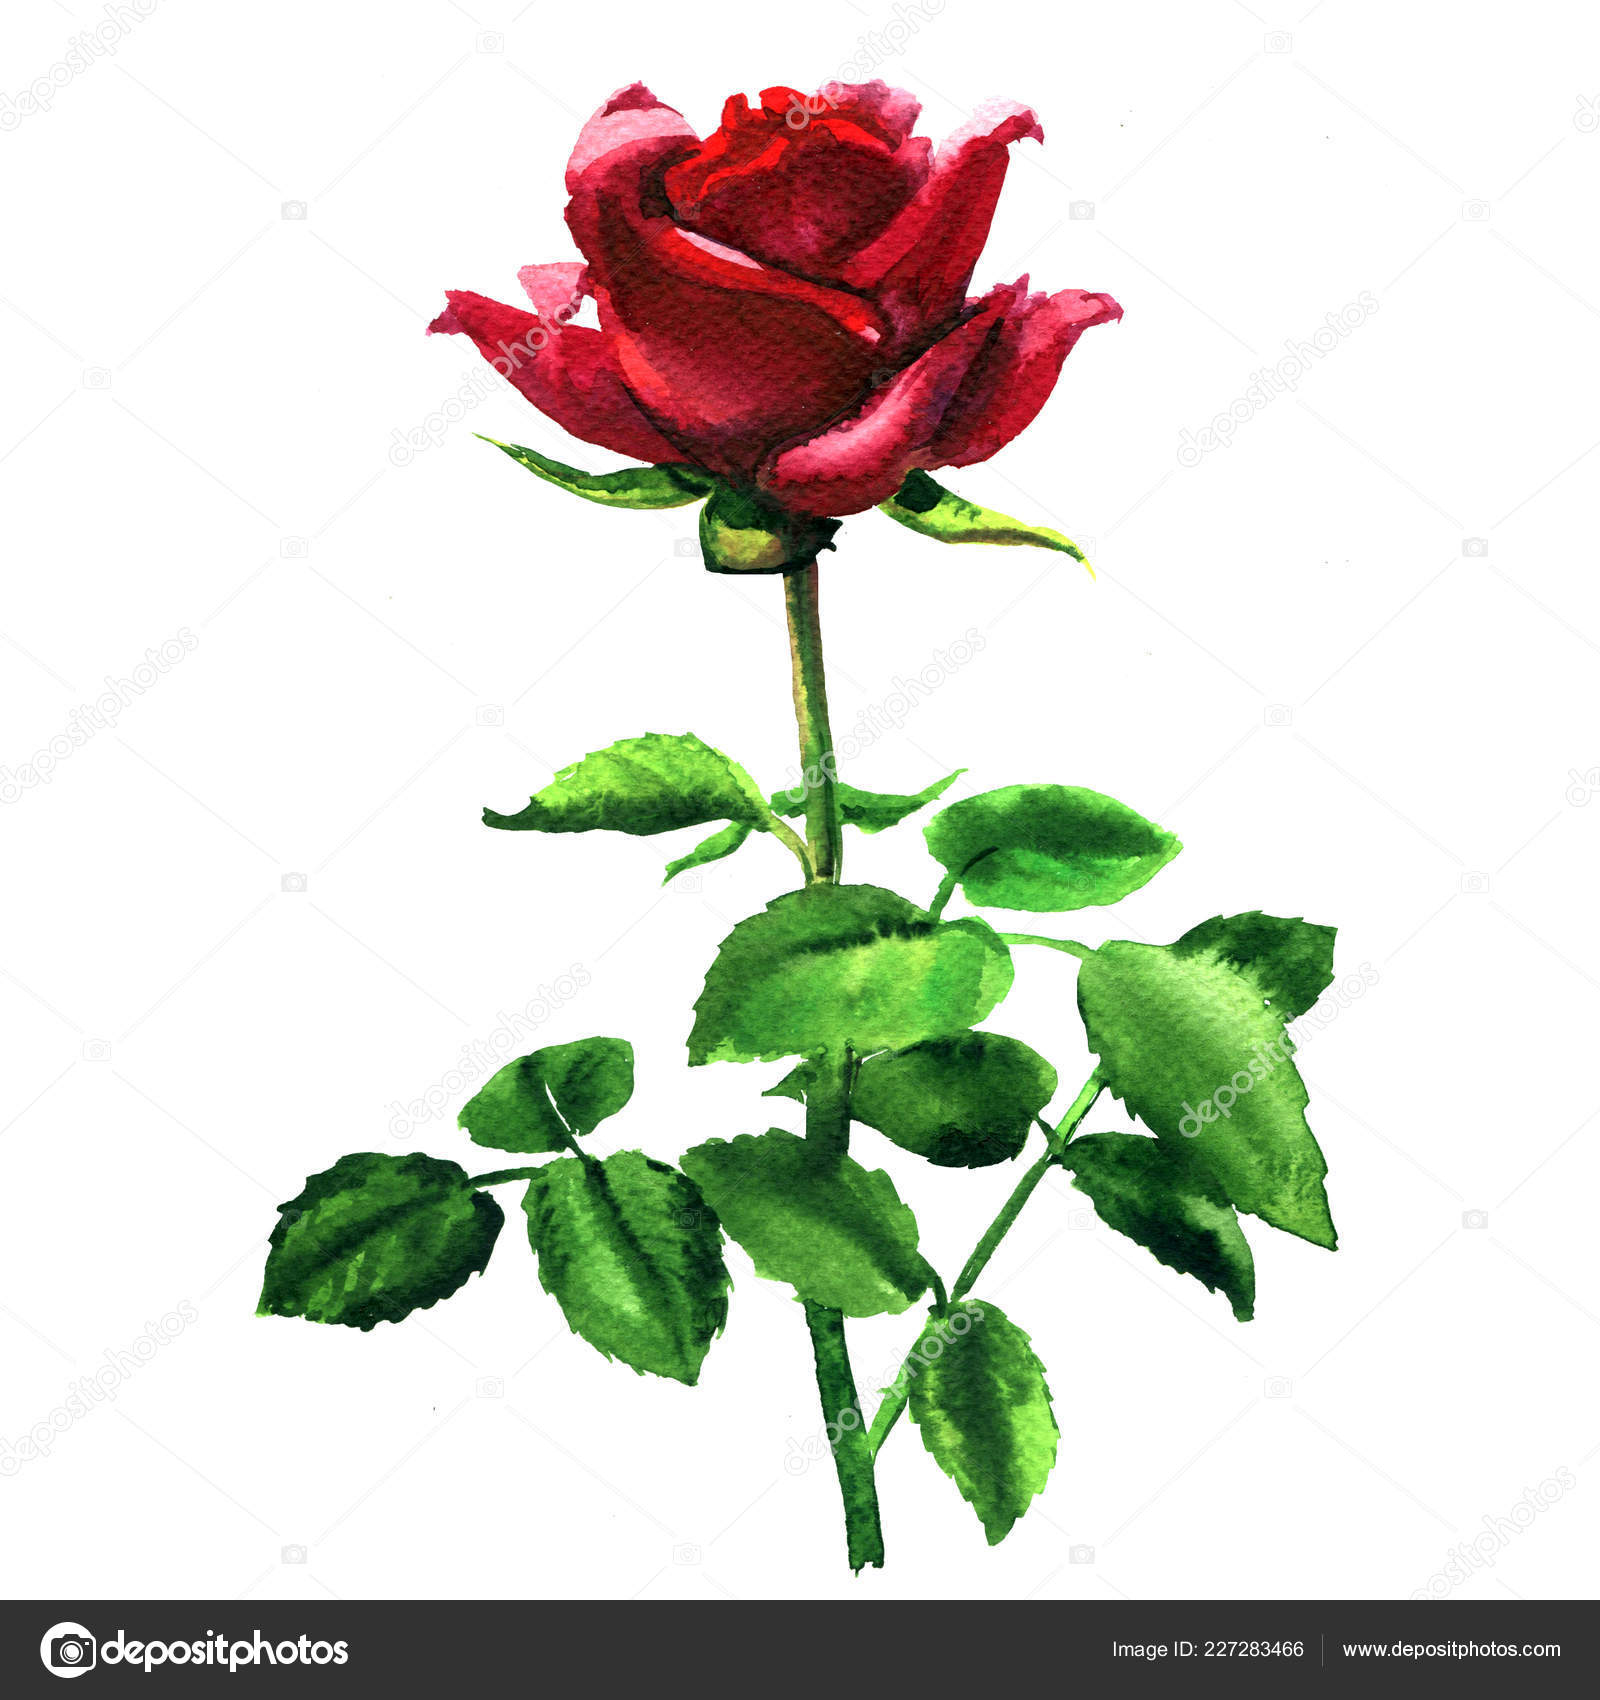 Beautiful romantic tender red, pink rose, single flower with